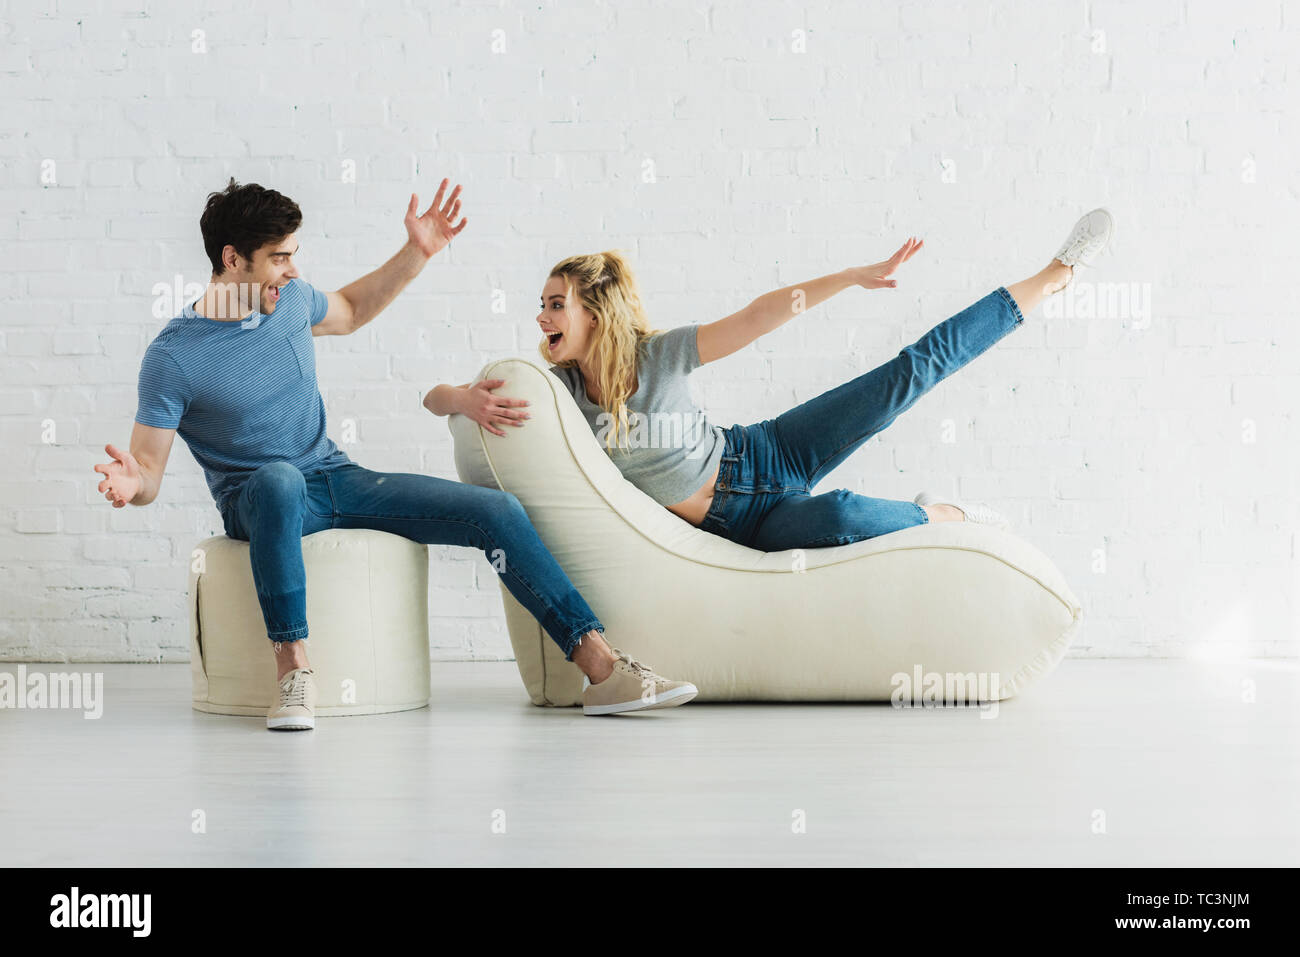 cheerful girl looking at man while gesturing and lying on bean bag chairs - Stock Image